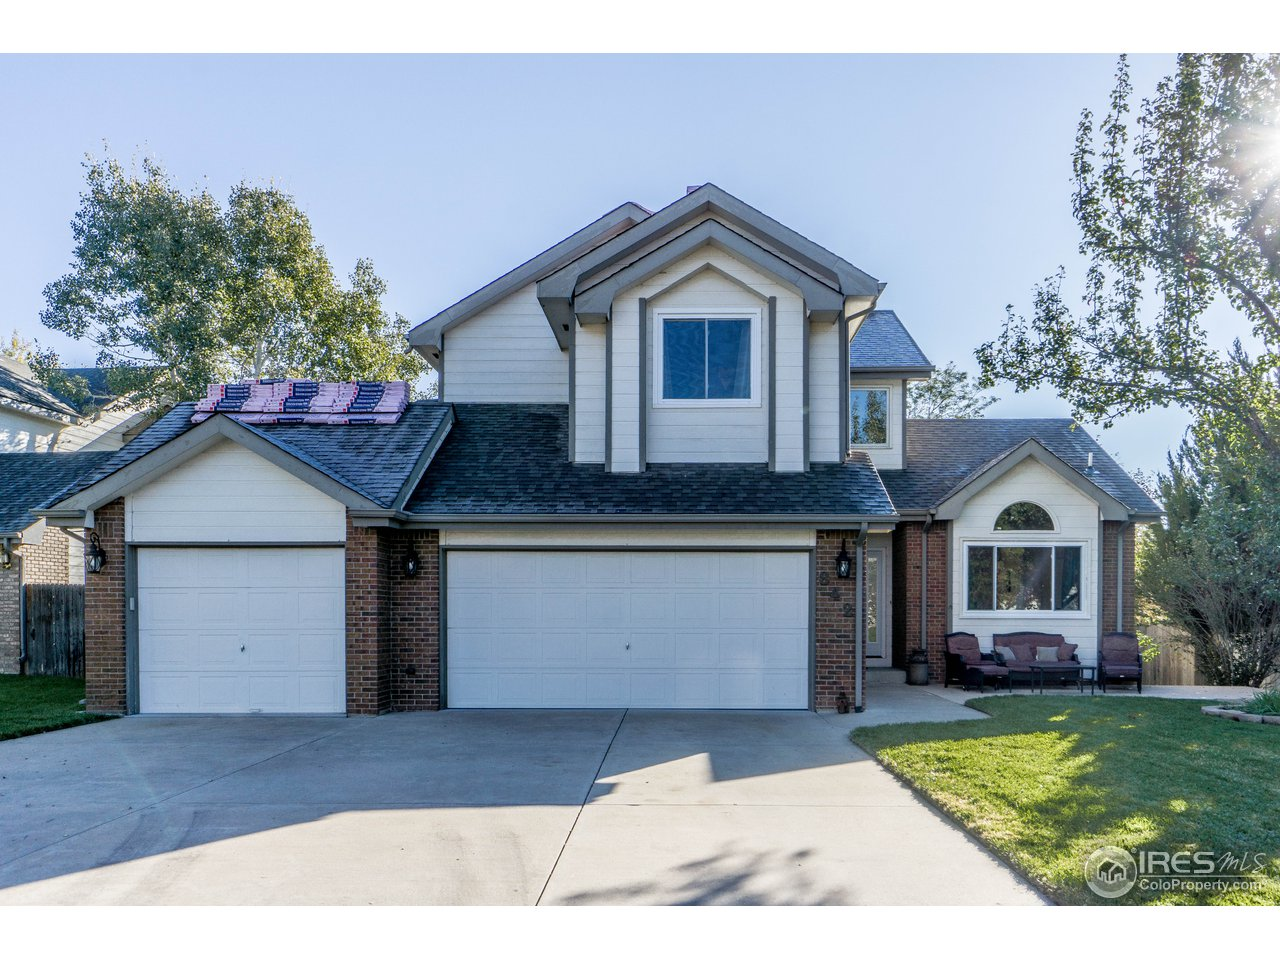 This gorgeous home with updates including  new bath, basement carpet, patio in back, windows with a lifetime transferable warranty and a newly finished basement.  Large private back yard with privacy fence and patio on the east side. The home sits on a quiet street and is close to amazing walking trails. The location of this neighborhood offers views ,easy access, mountain views and proximity to shopping and eateries.